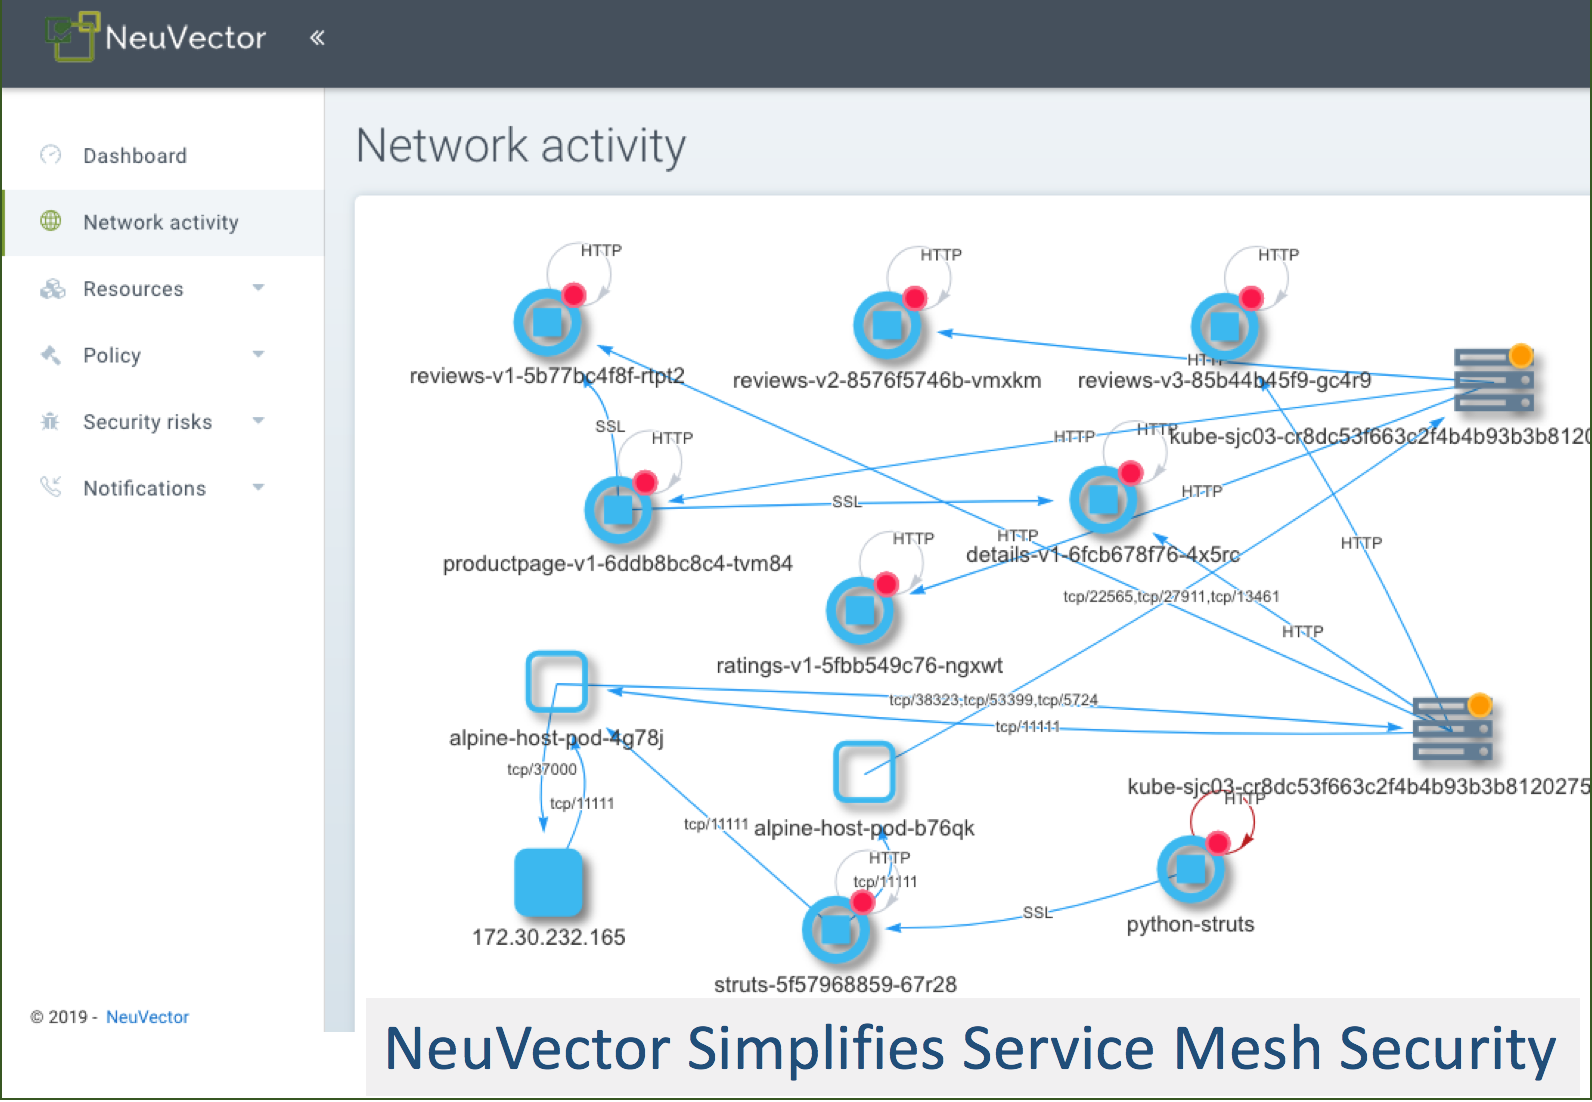 NeuVector Adds Enhanced Security to Service Meshes - The New